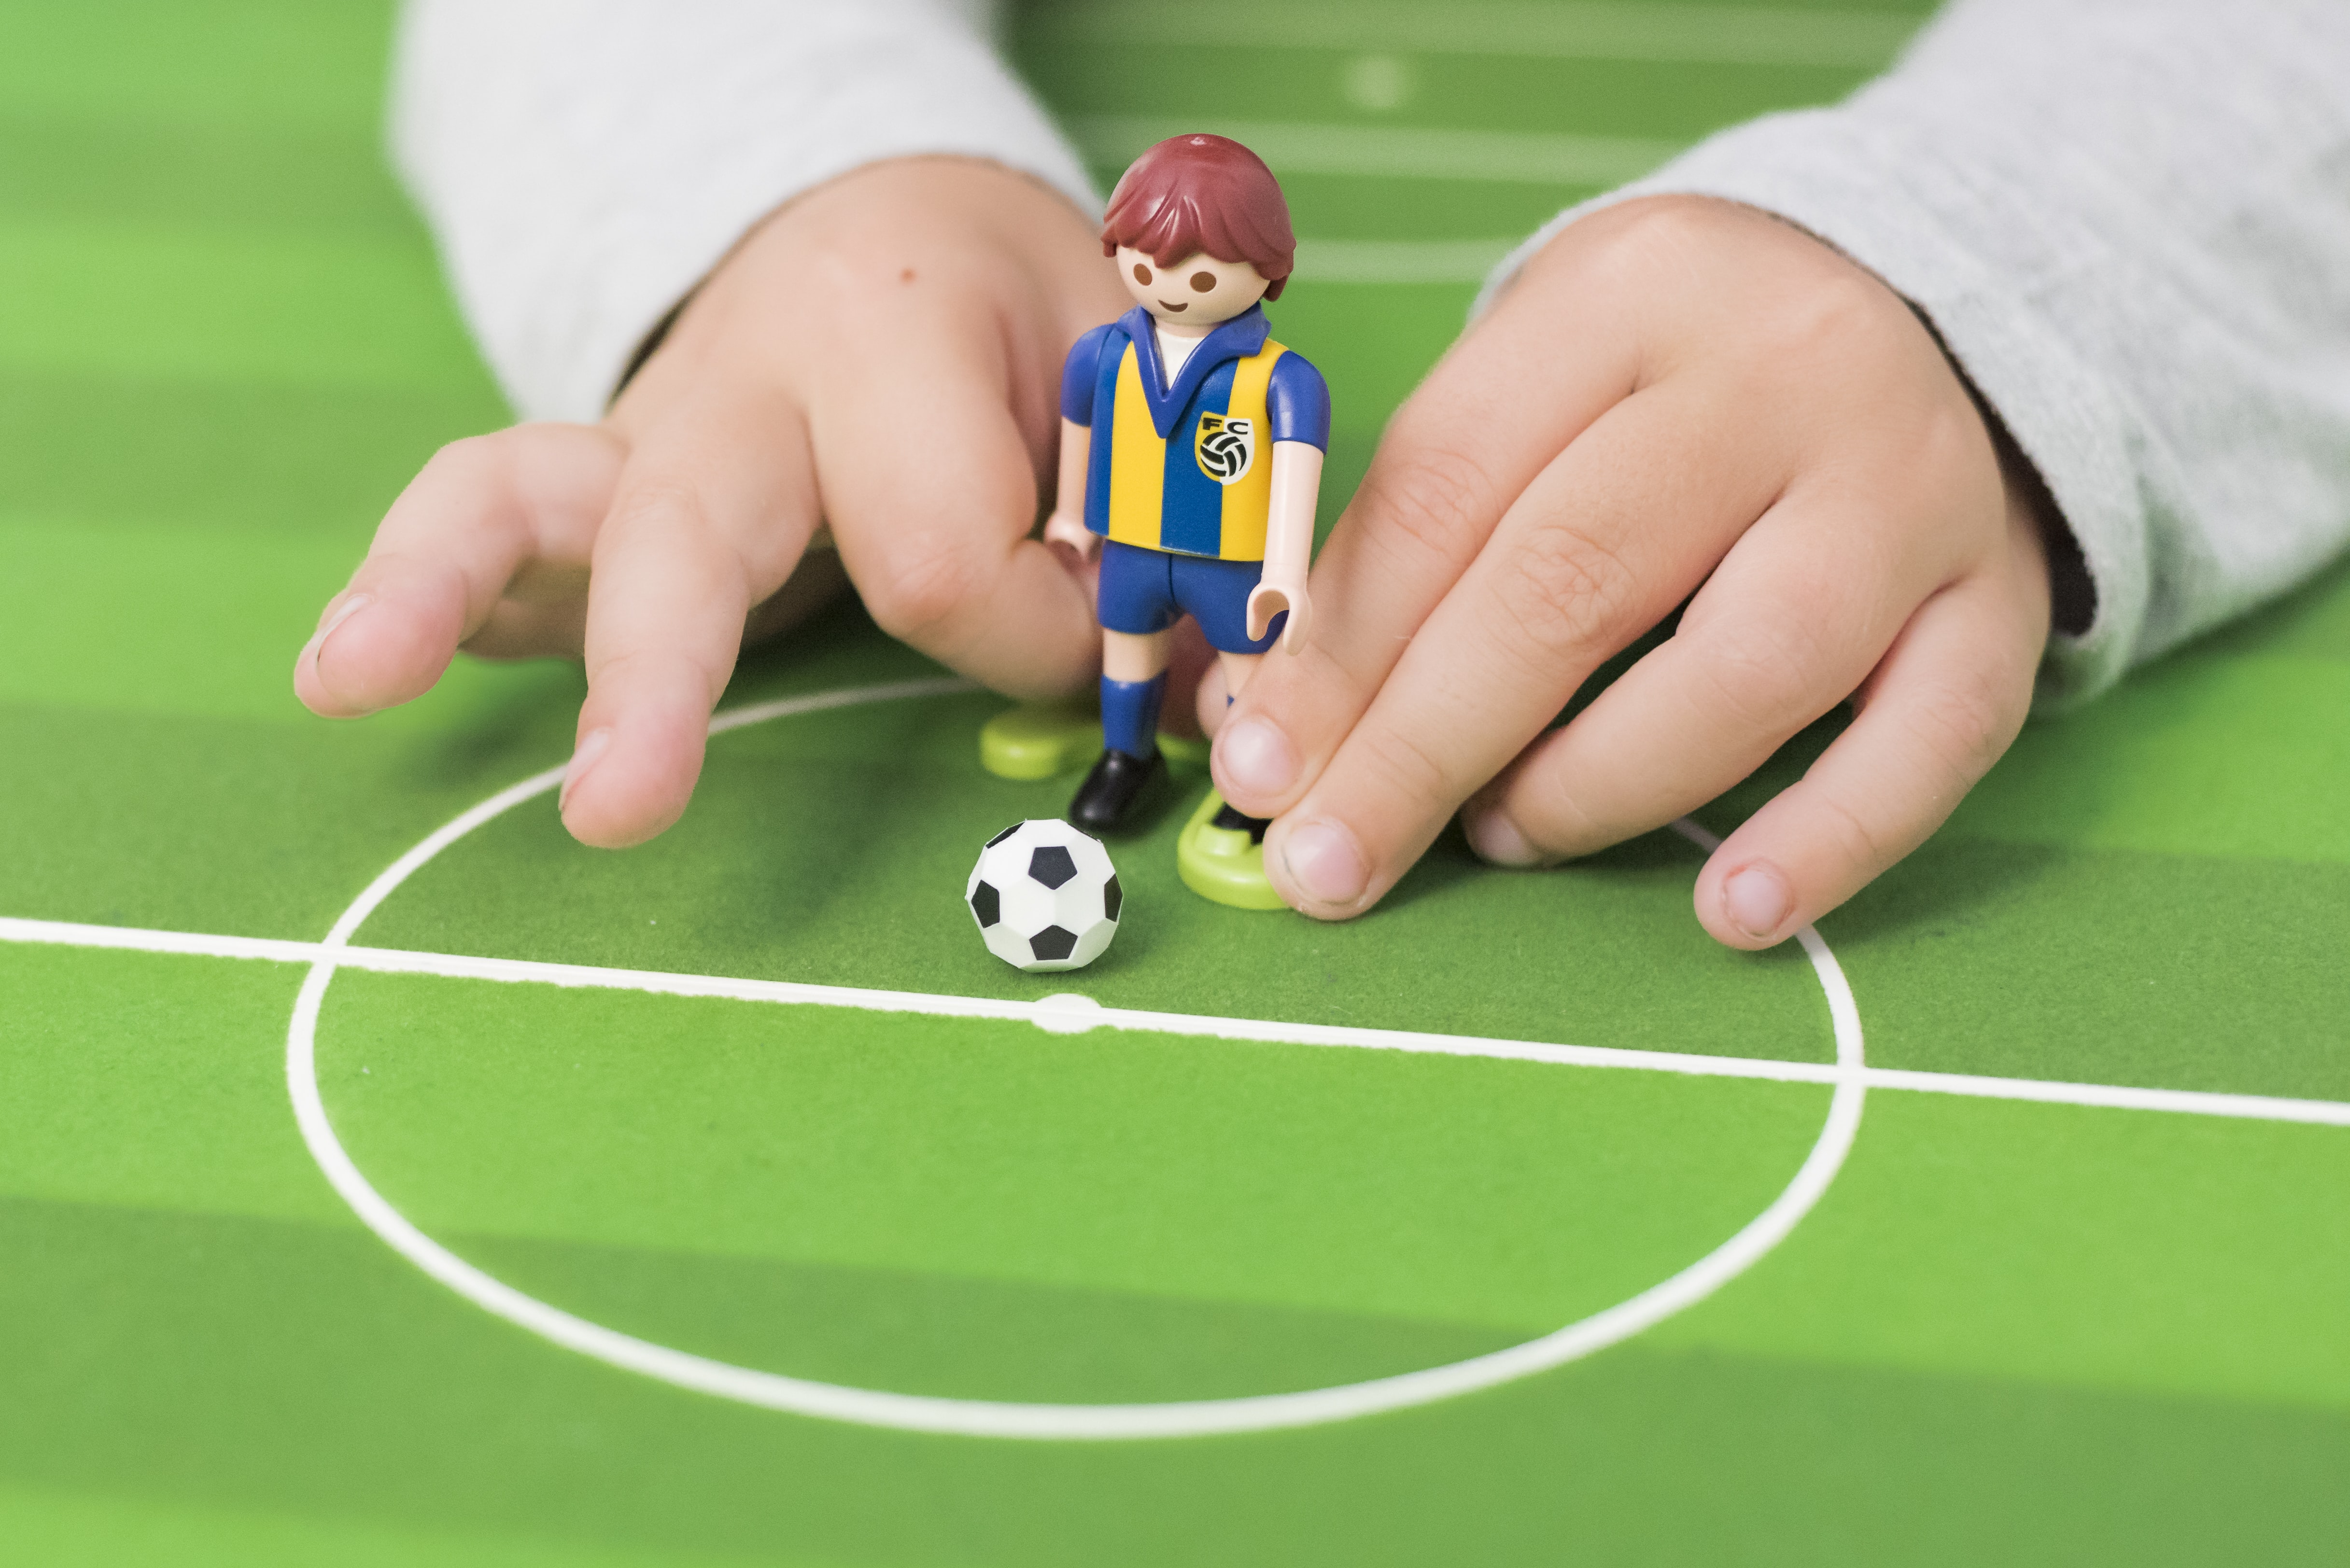 person playing minifig soccer